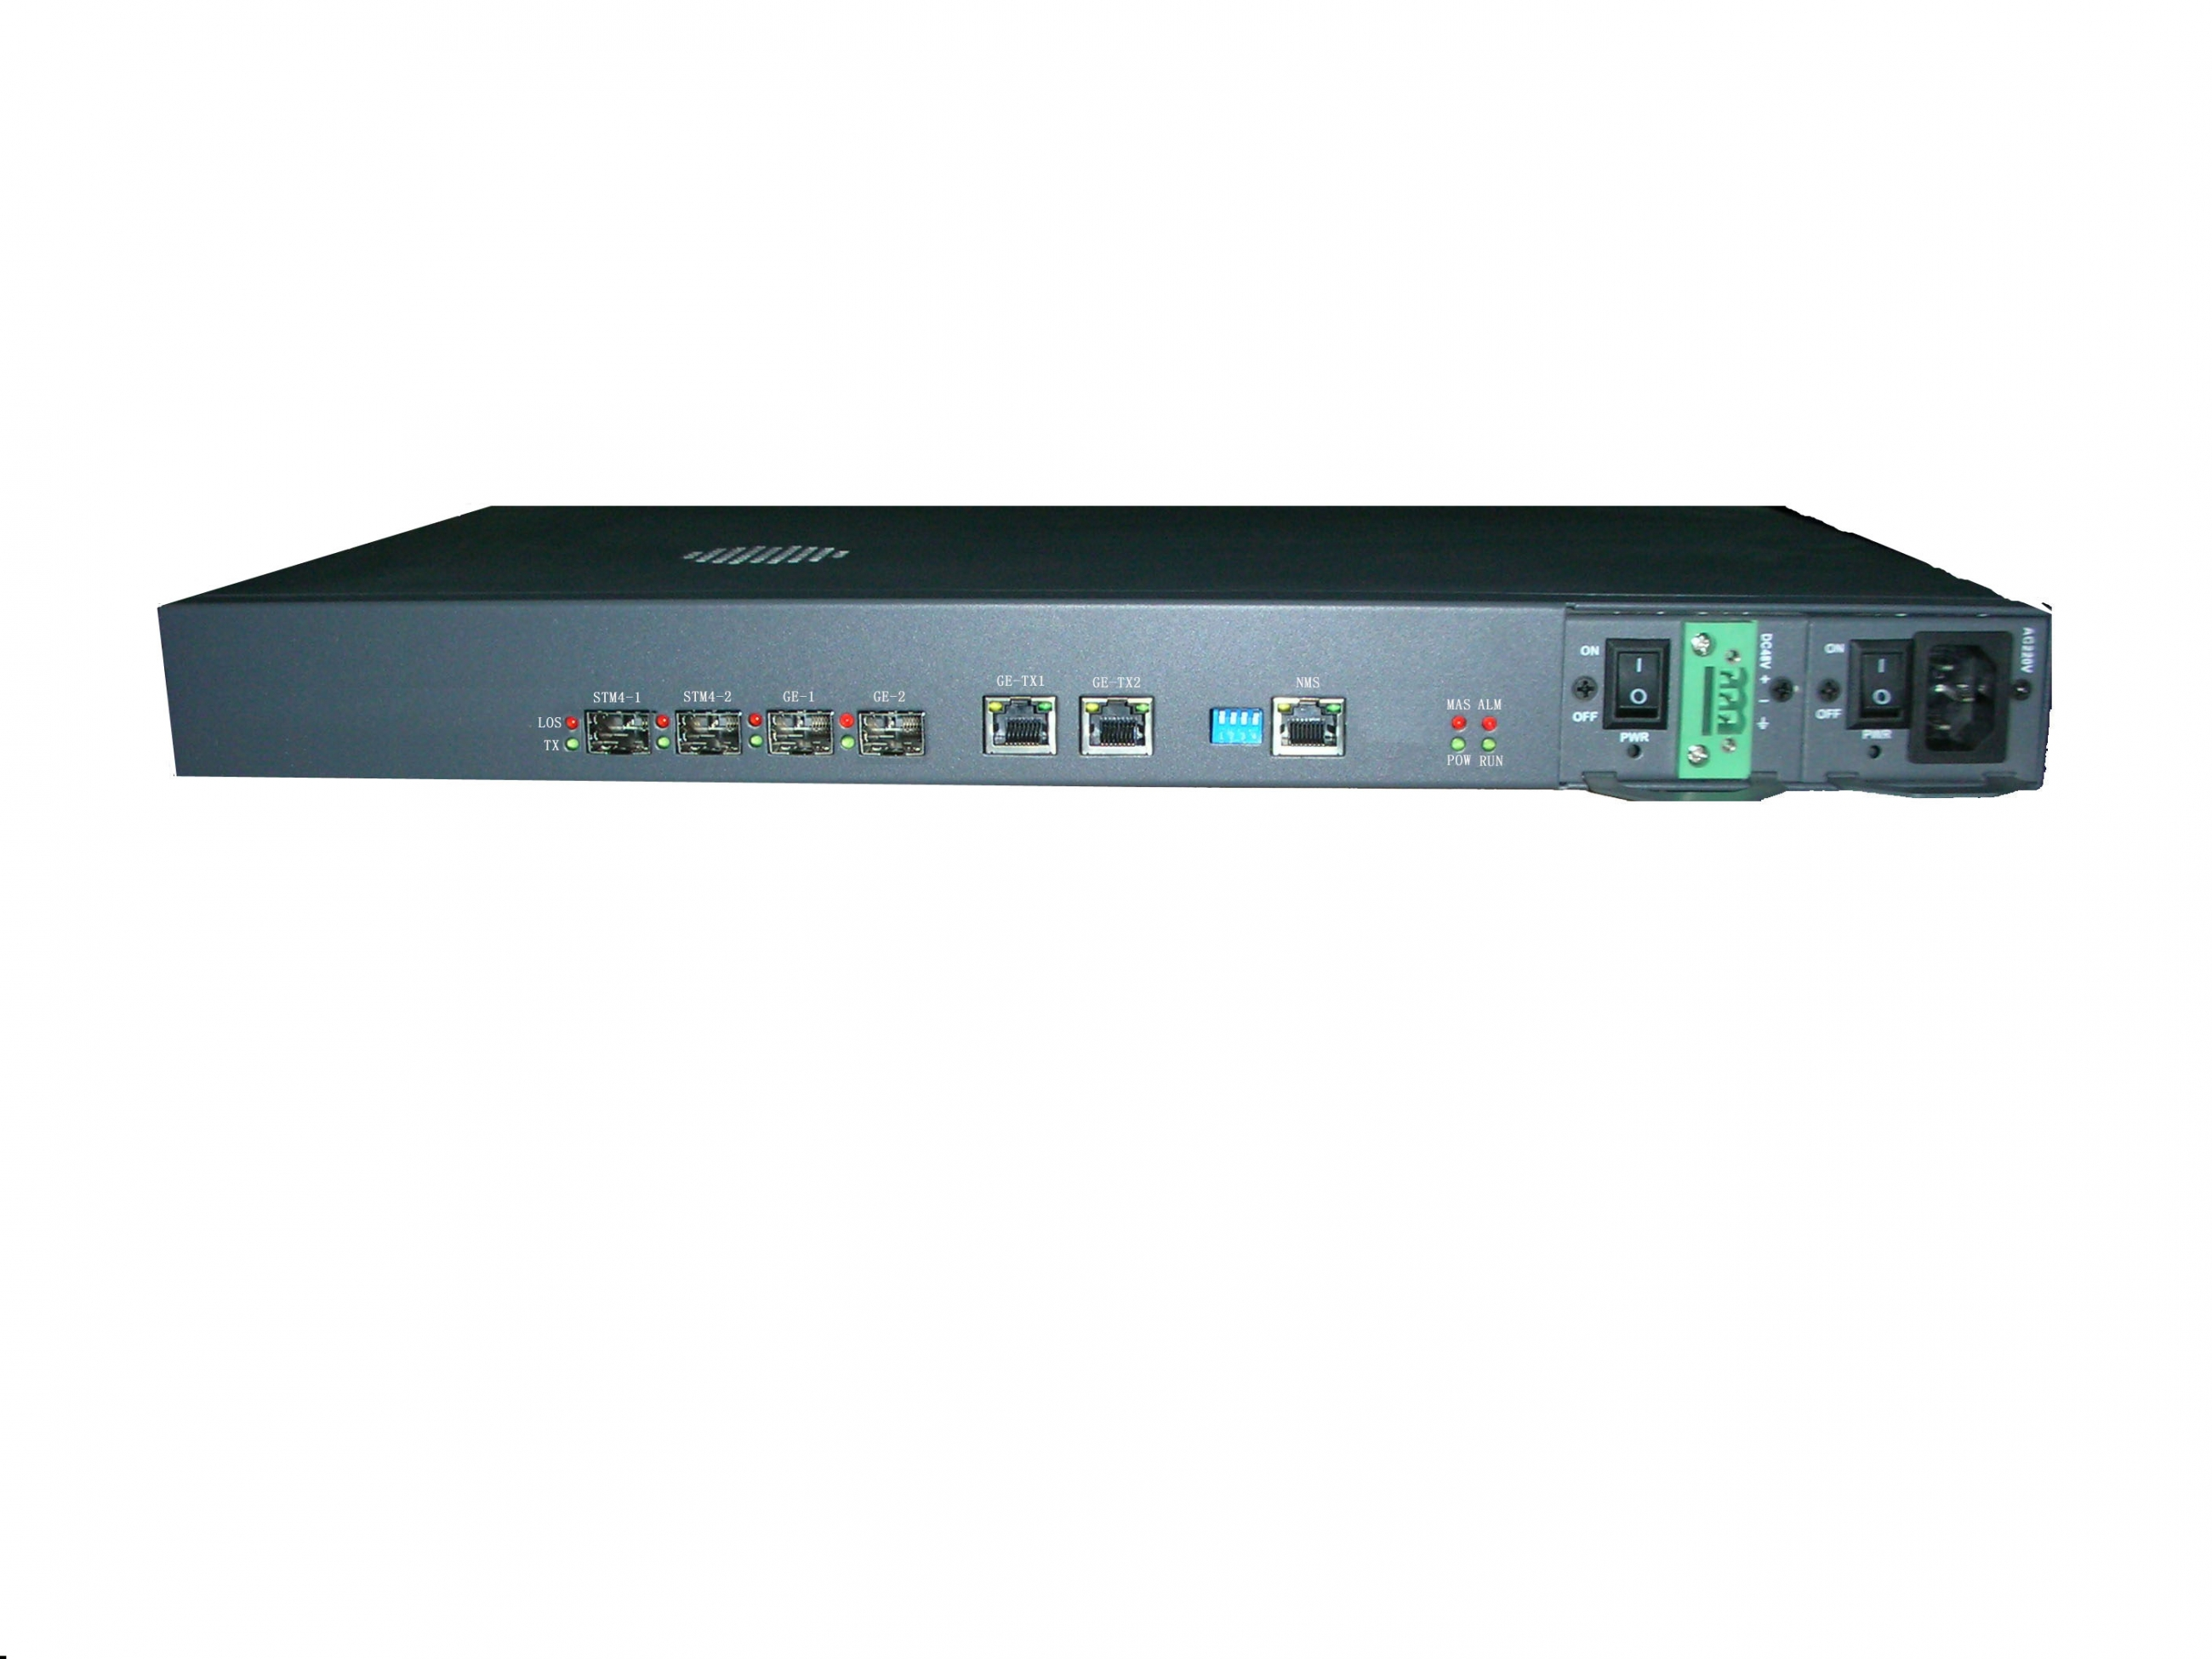 STM-4 to Gigabit Ethernet 10/100/1000 EoS type interface converter